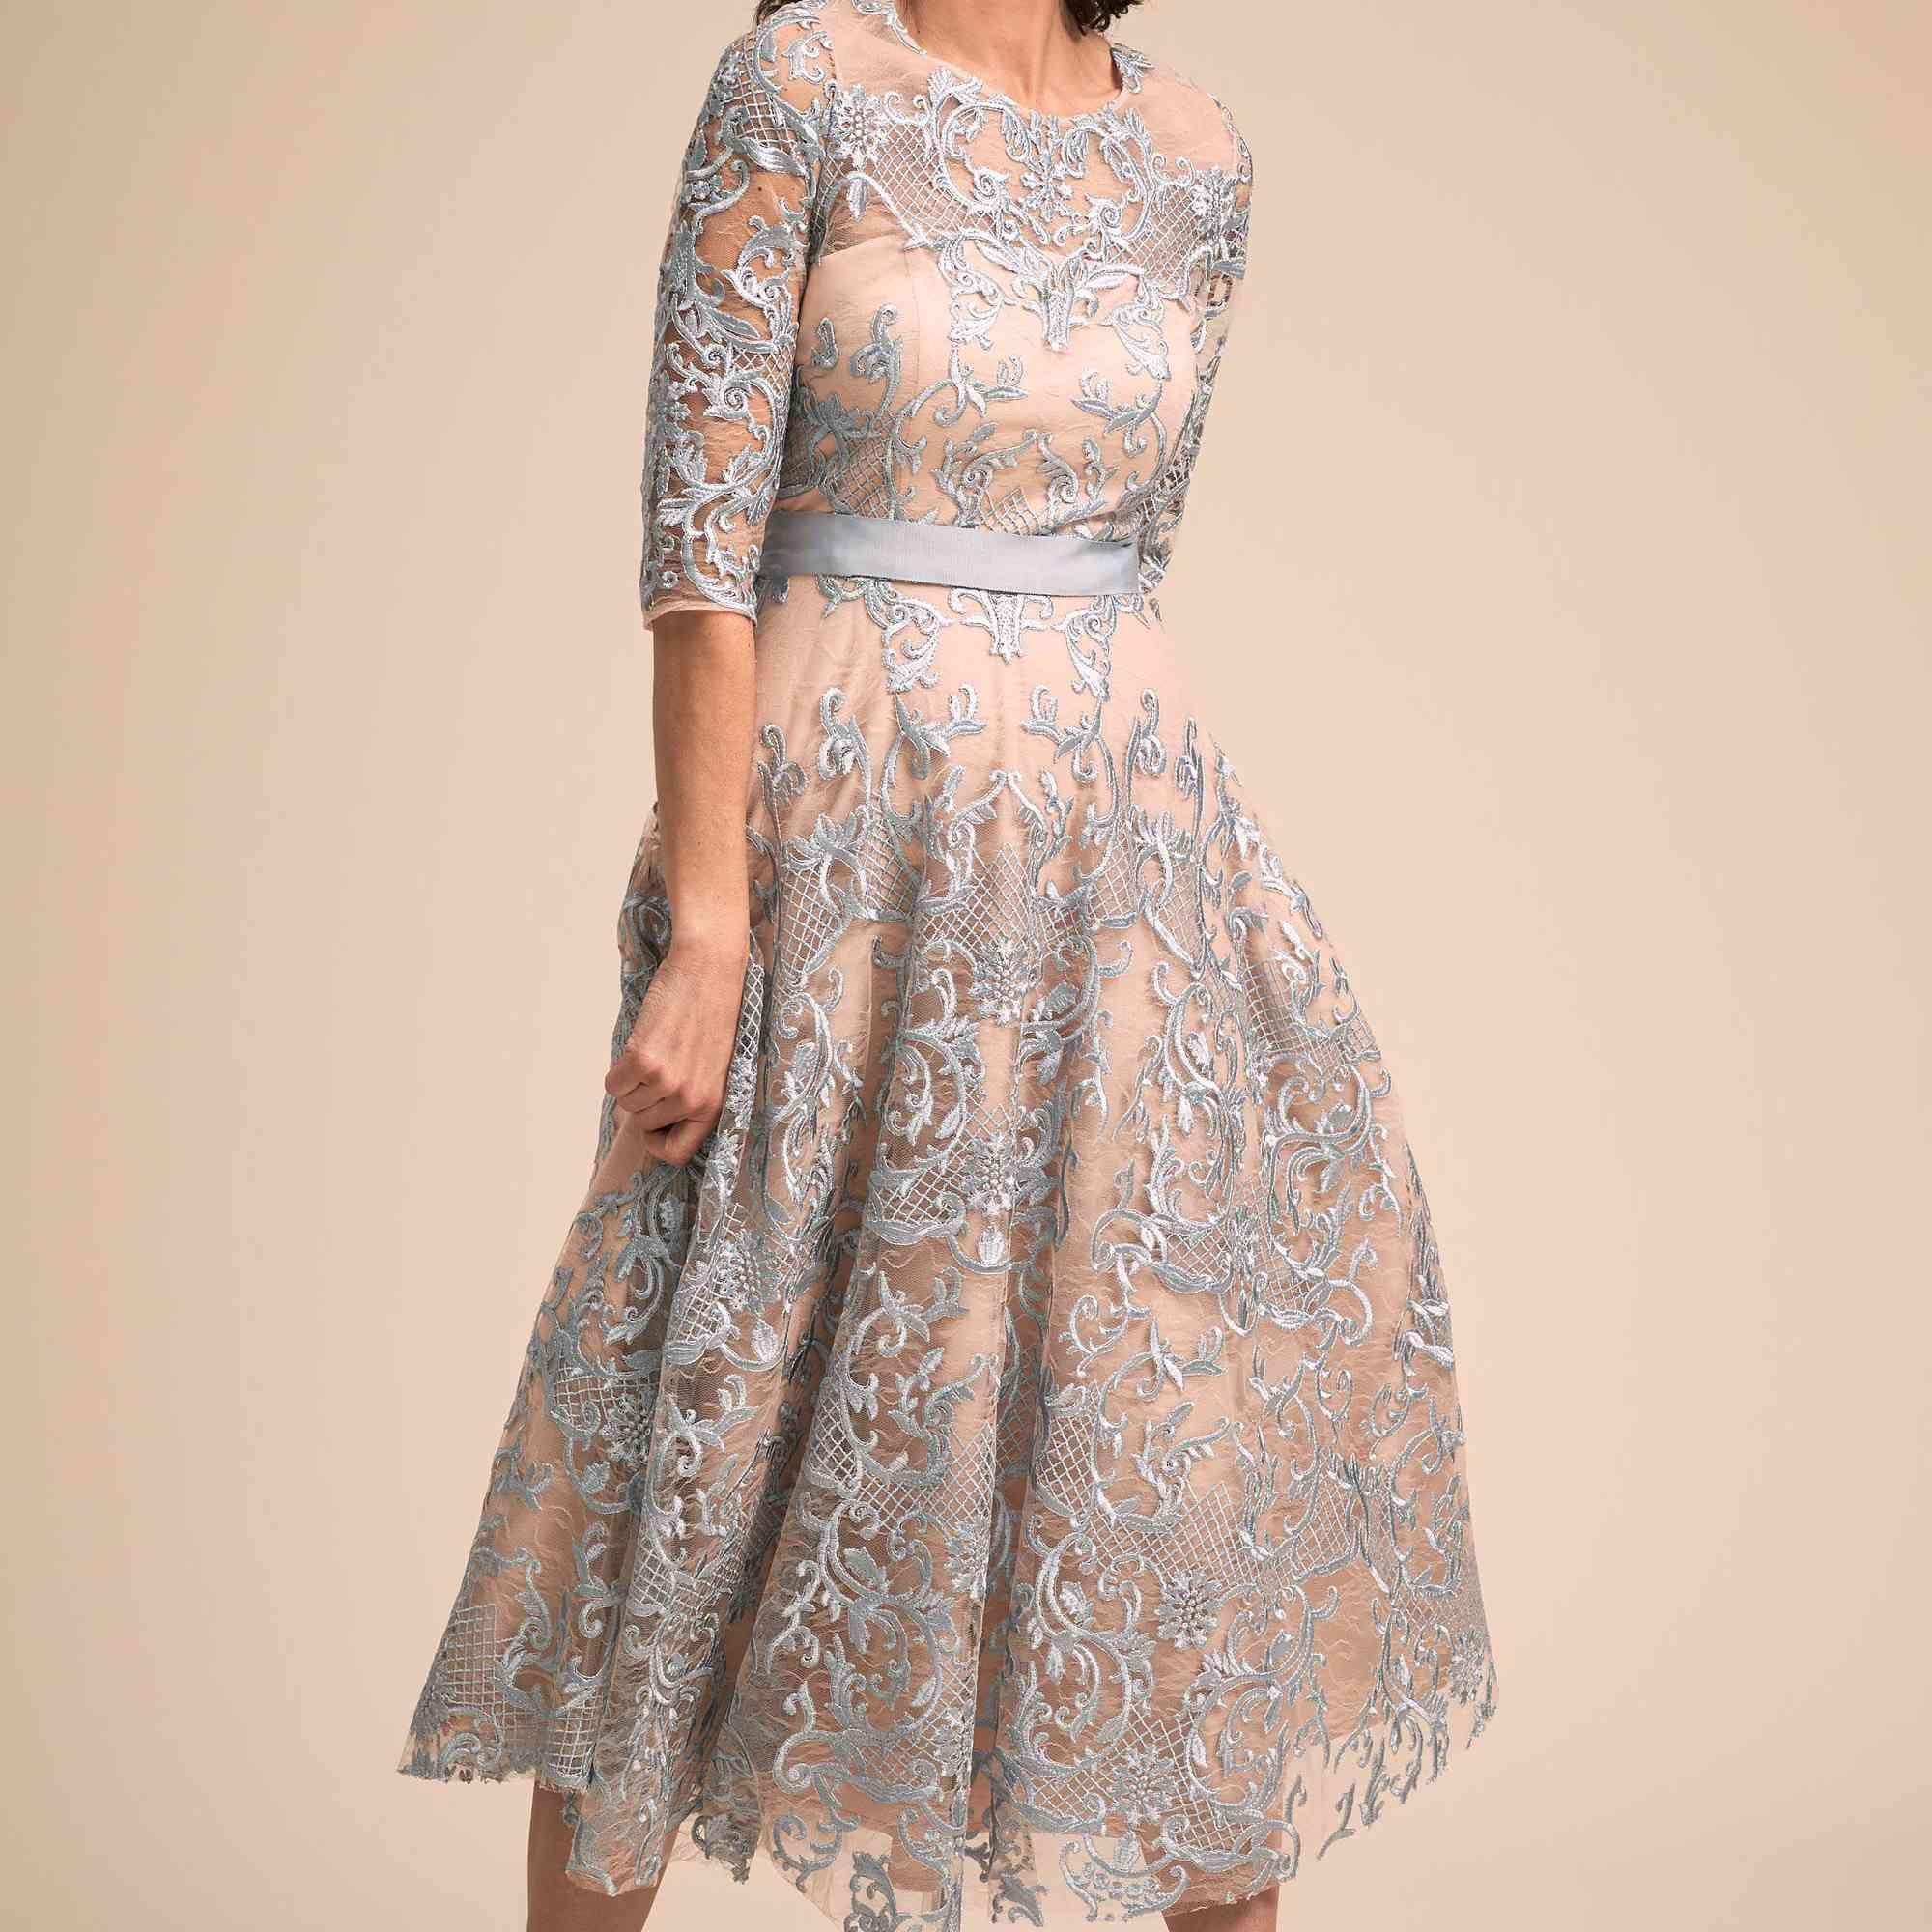 13 Tea Length Mother Of The Groom Dresses For Every Style